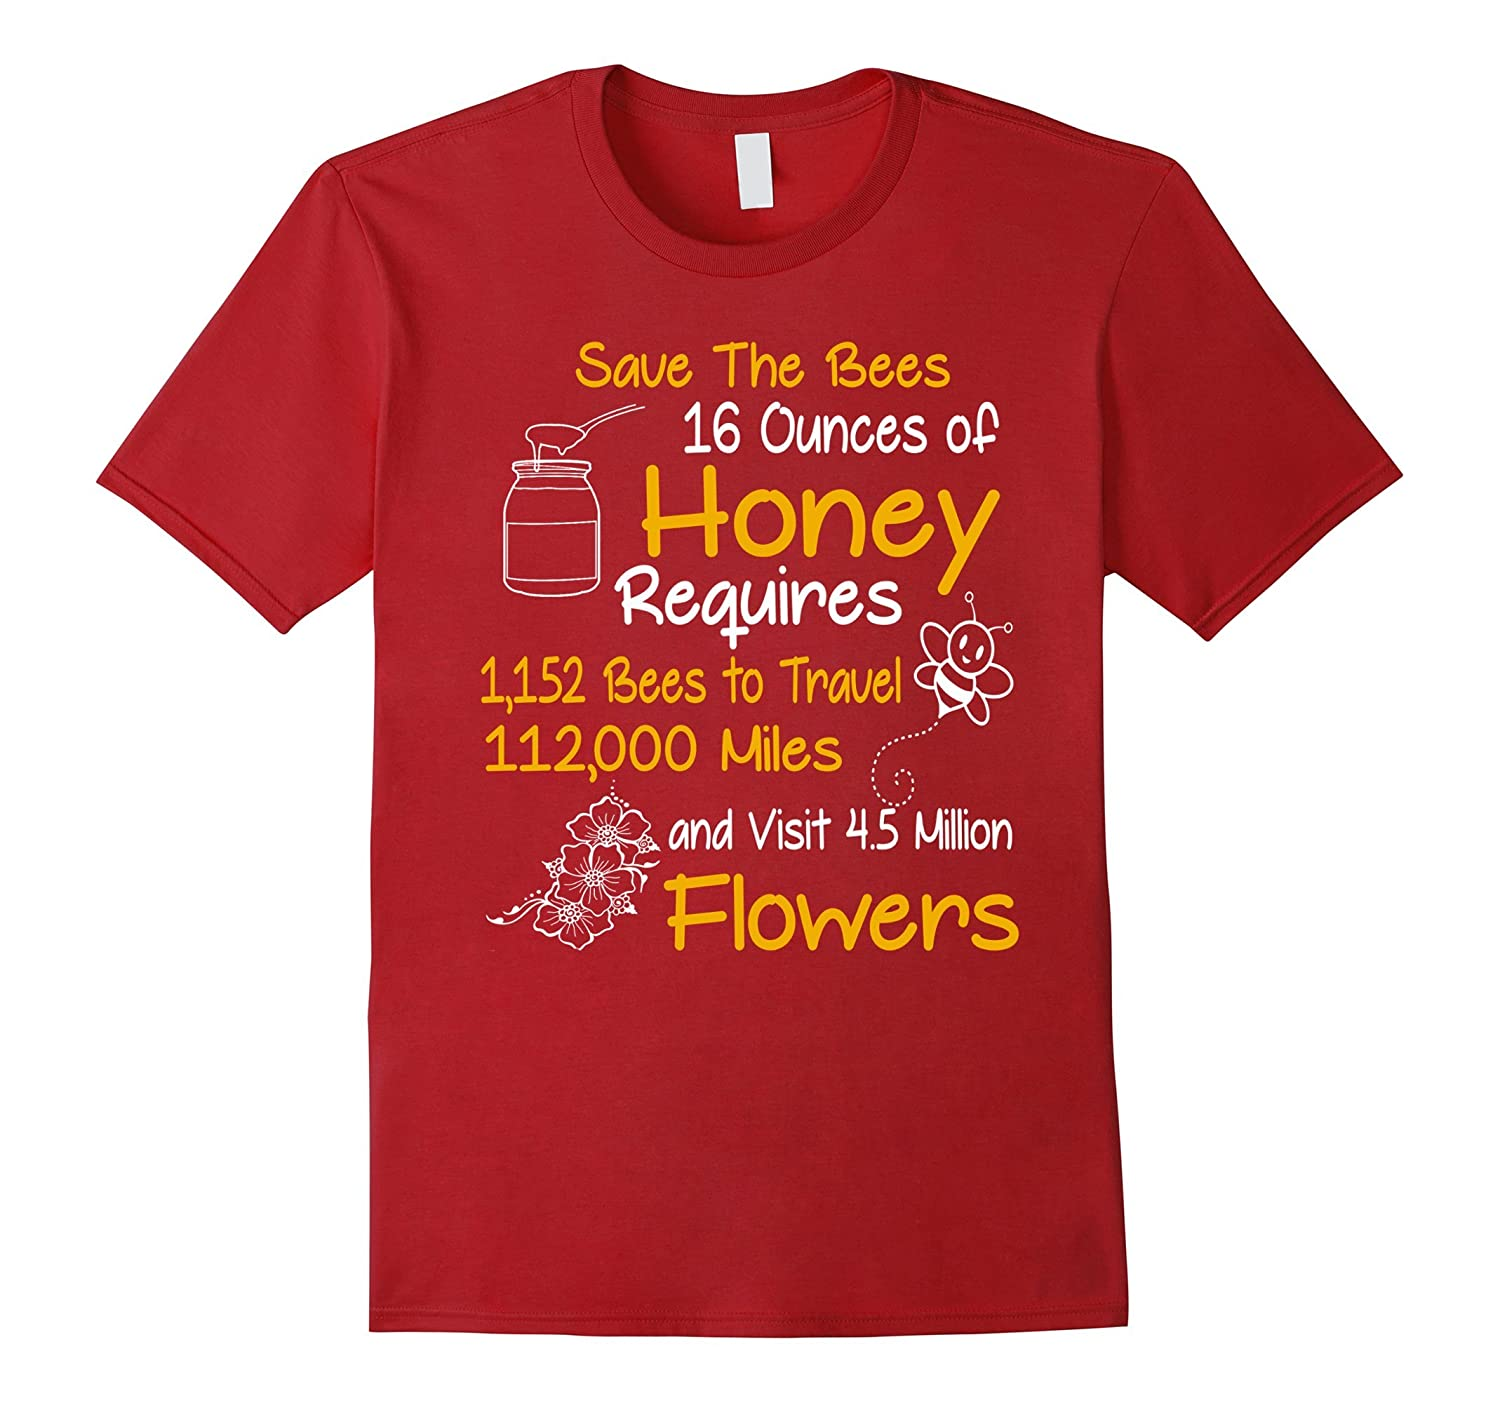 Bee Love Lover Shirt Gifts Save The Bees Shirt I Love Bees-TH